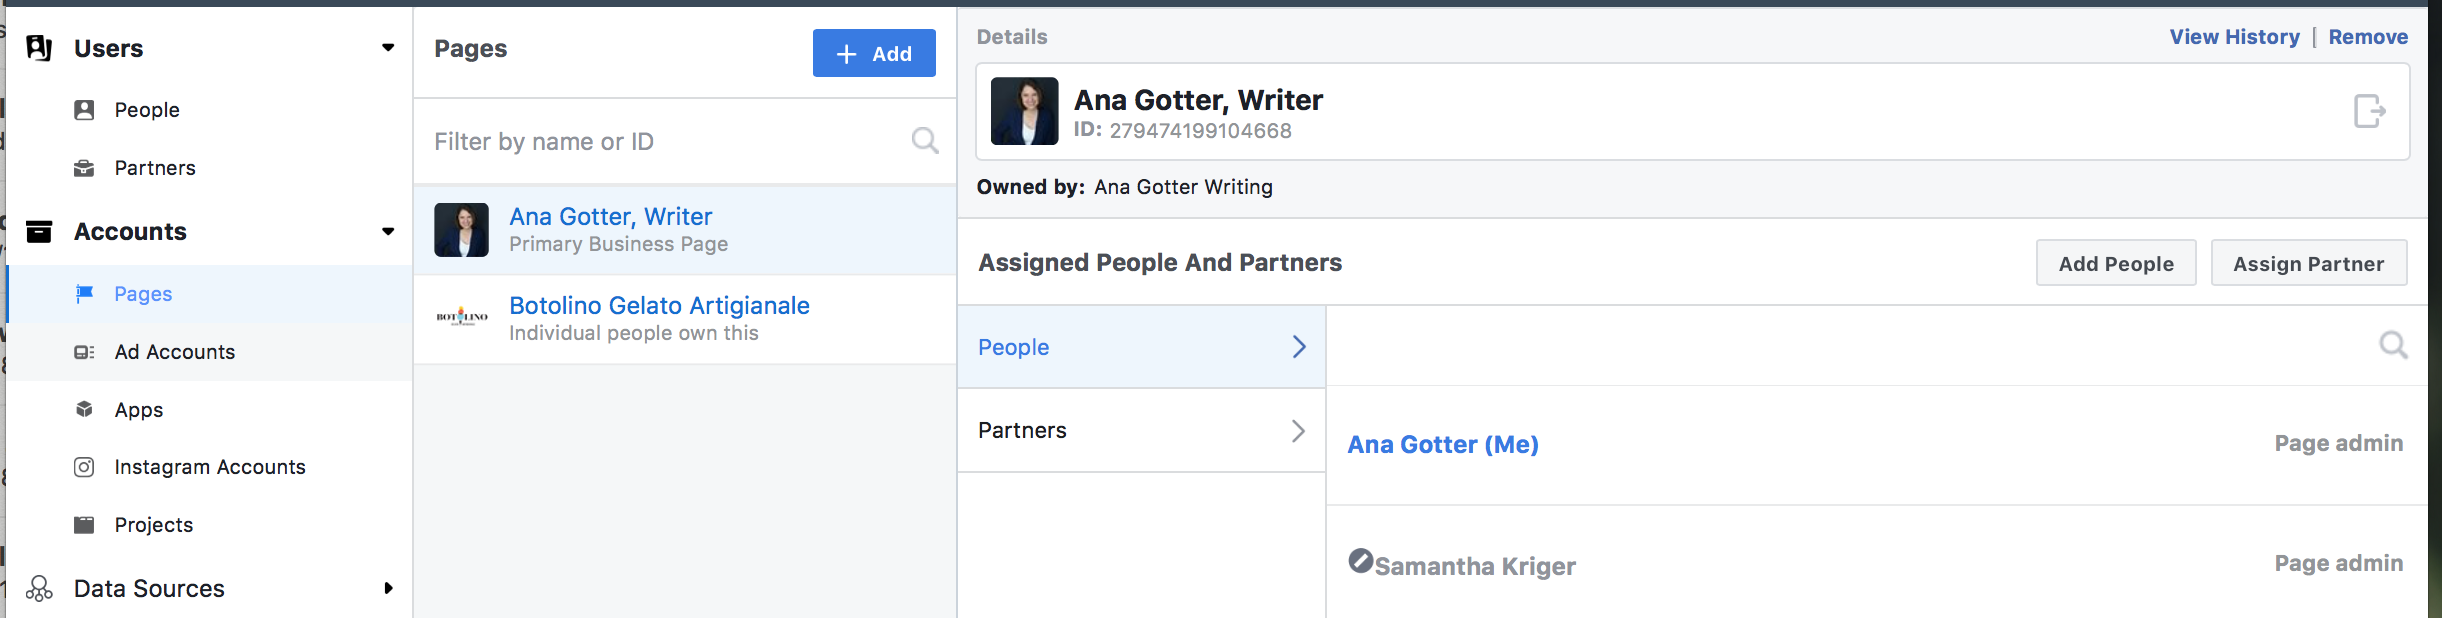 The Complete Guide to Facebook's Business Manager